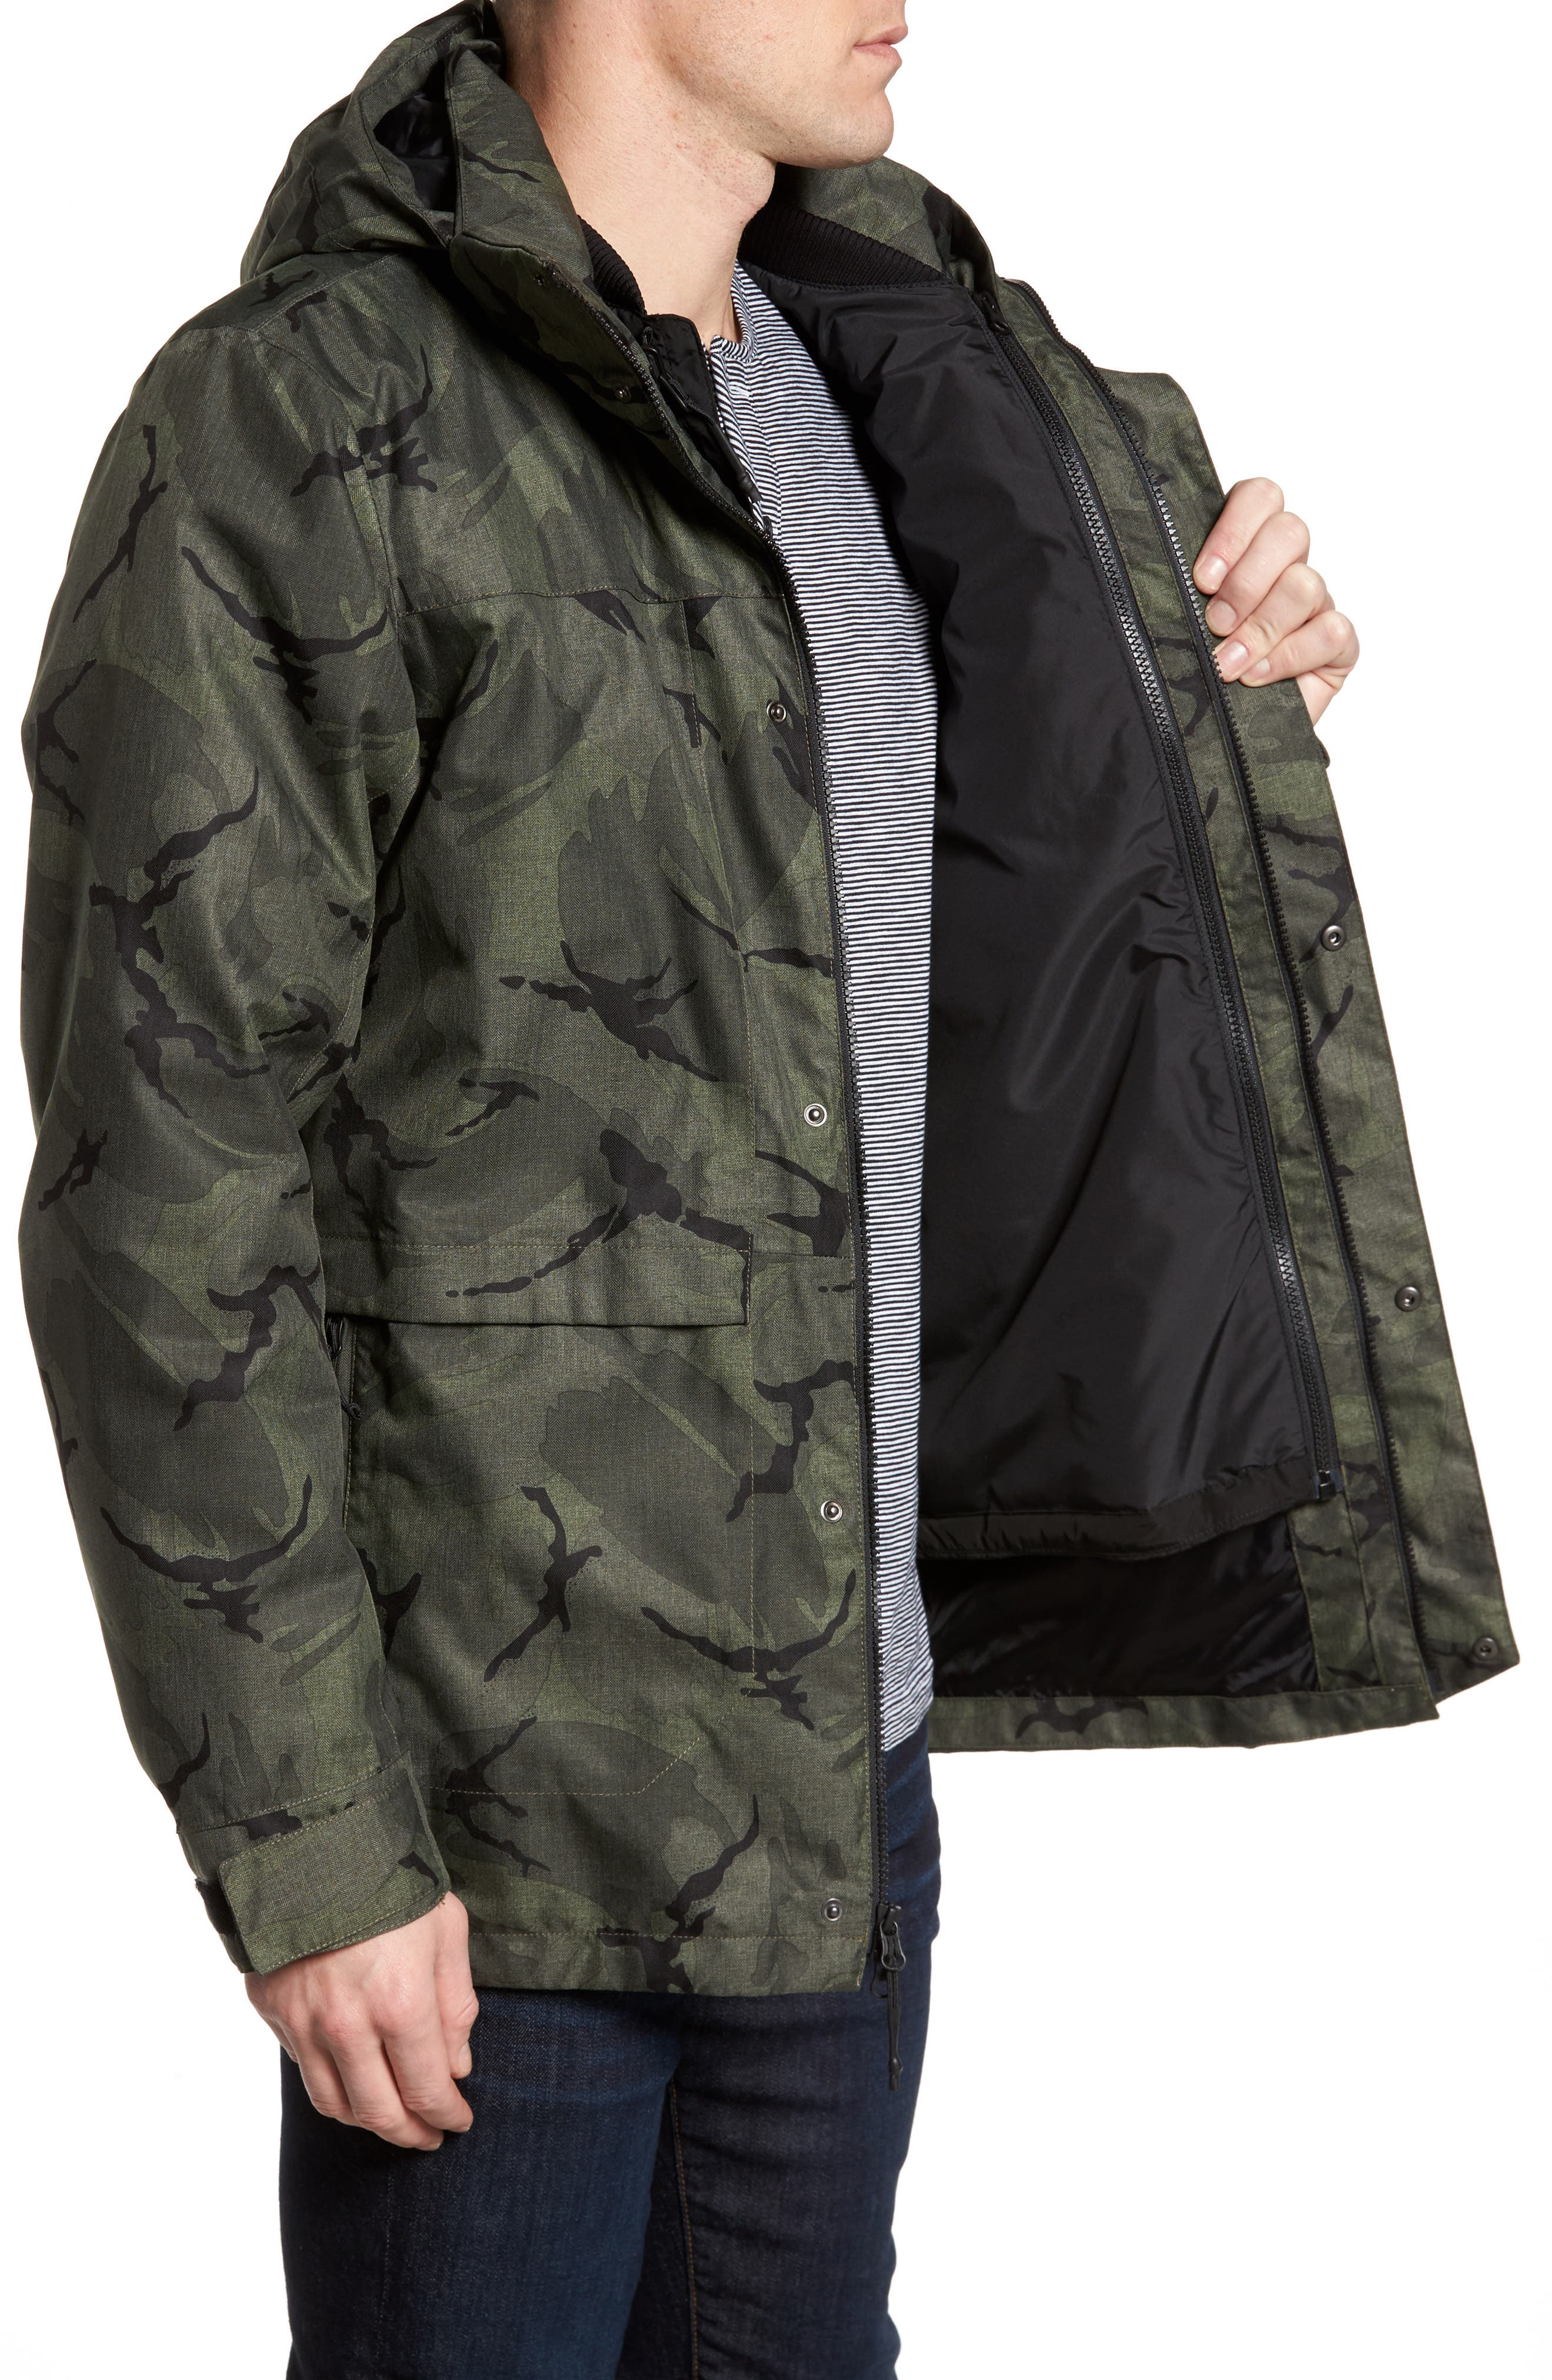 Outer Boroughs 3-in-1 TriClimate<sup>®</sup> Waterproof Parka,                             Alternate thumbnail 4, color,                             New Taupe Green Disrupt